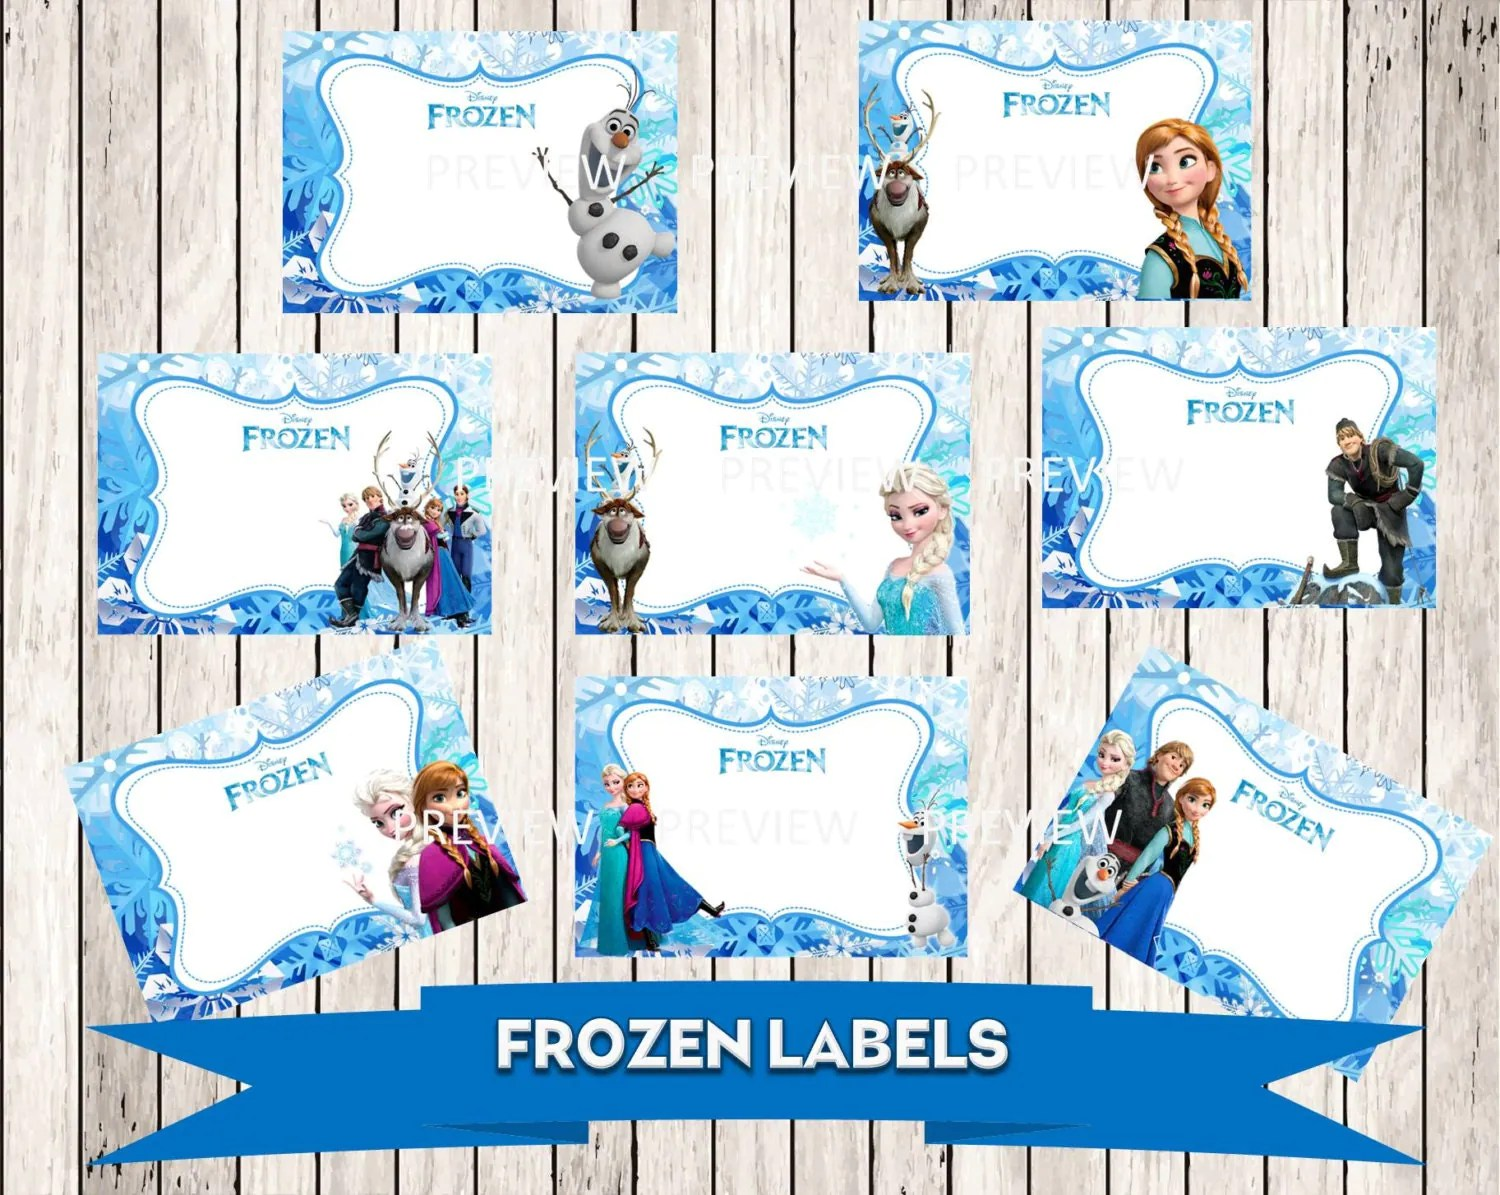 Frozen Printable Food Labels That Are Persnickety